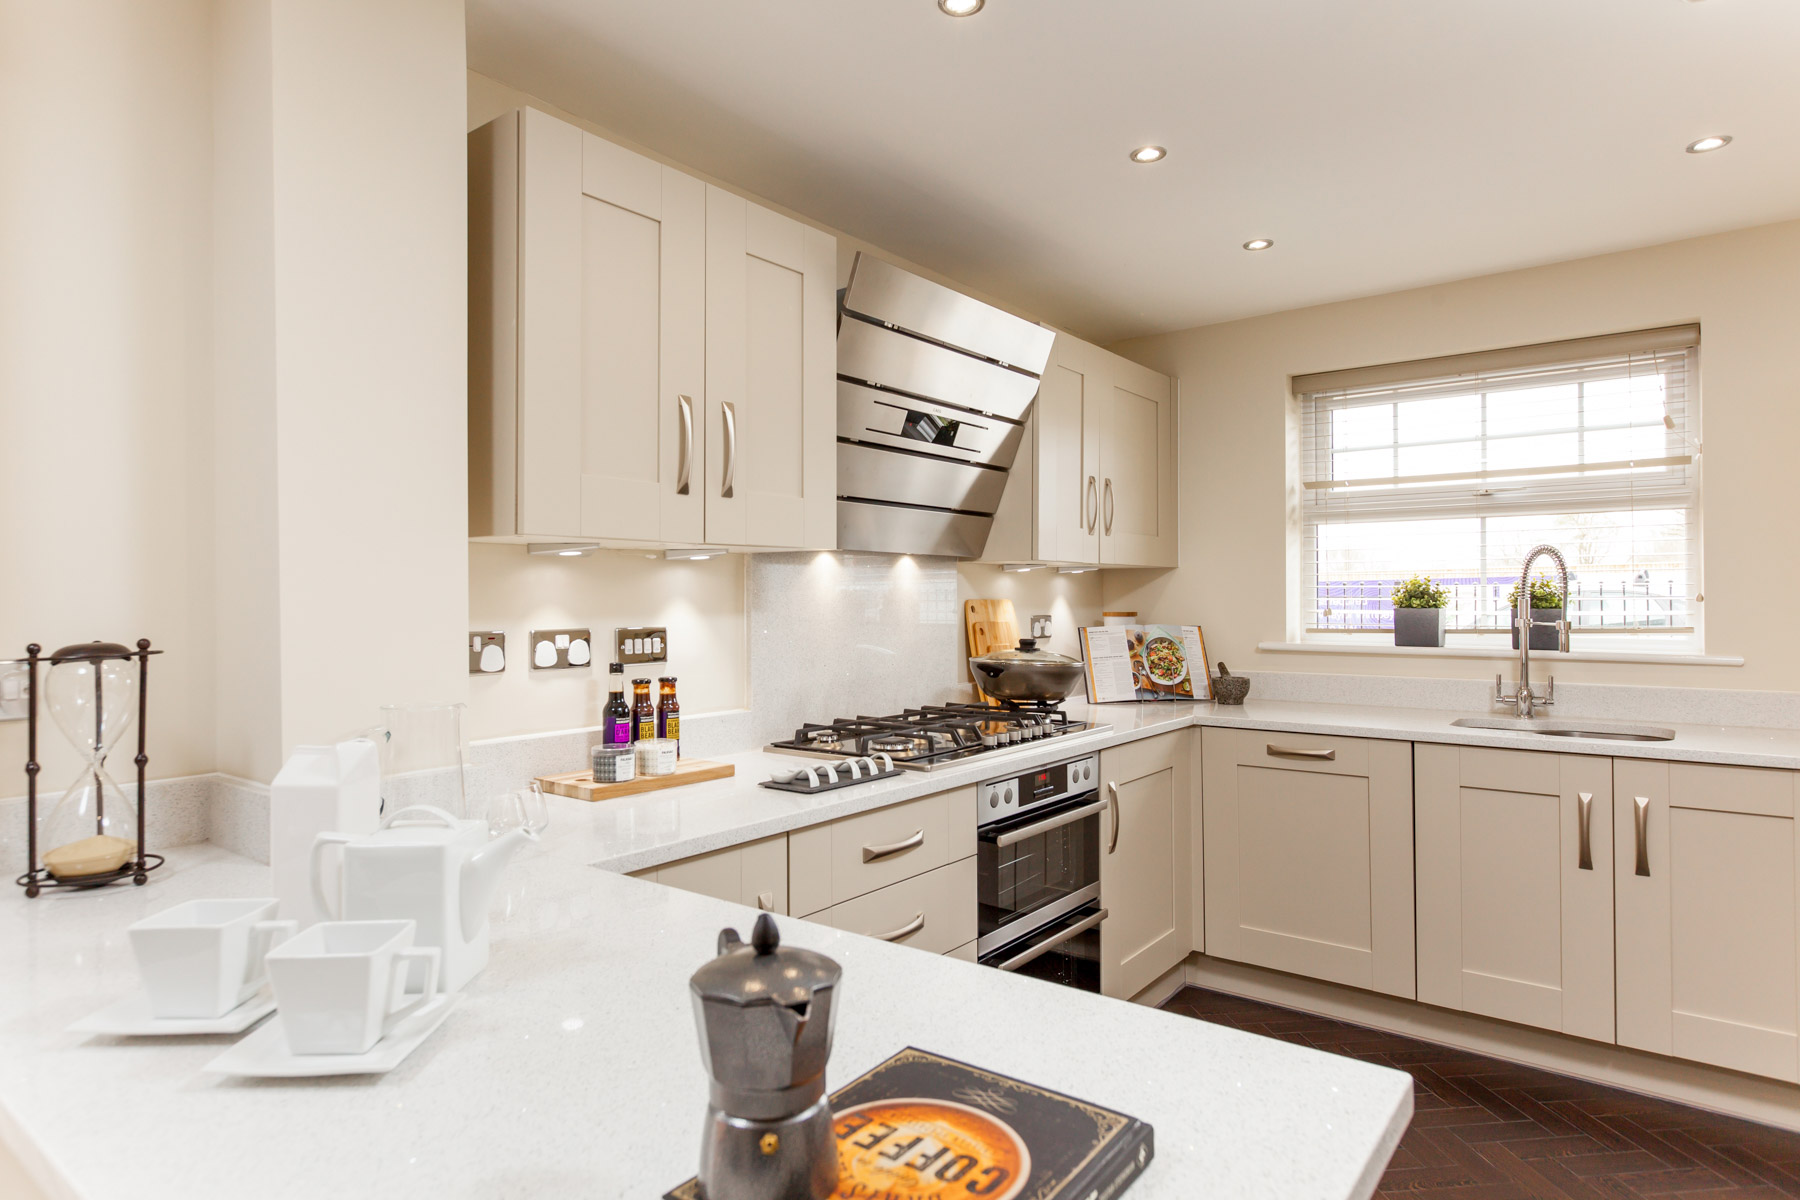 TW Exeter - Cranbrook - Lindale example kitchen